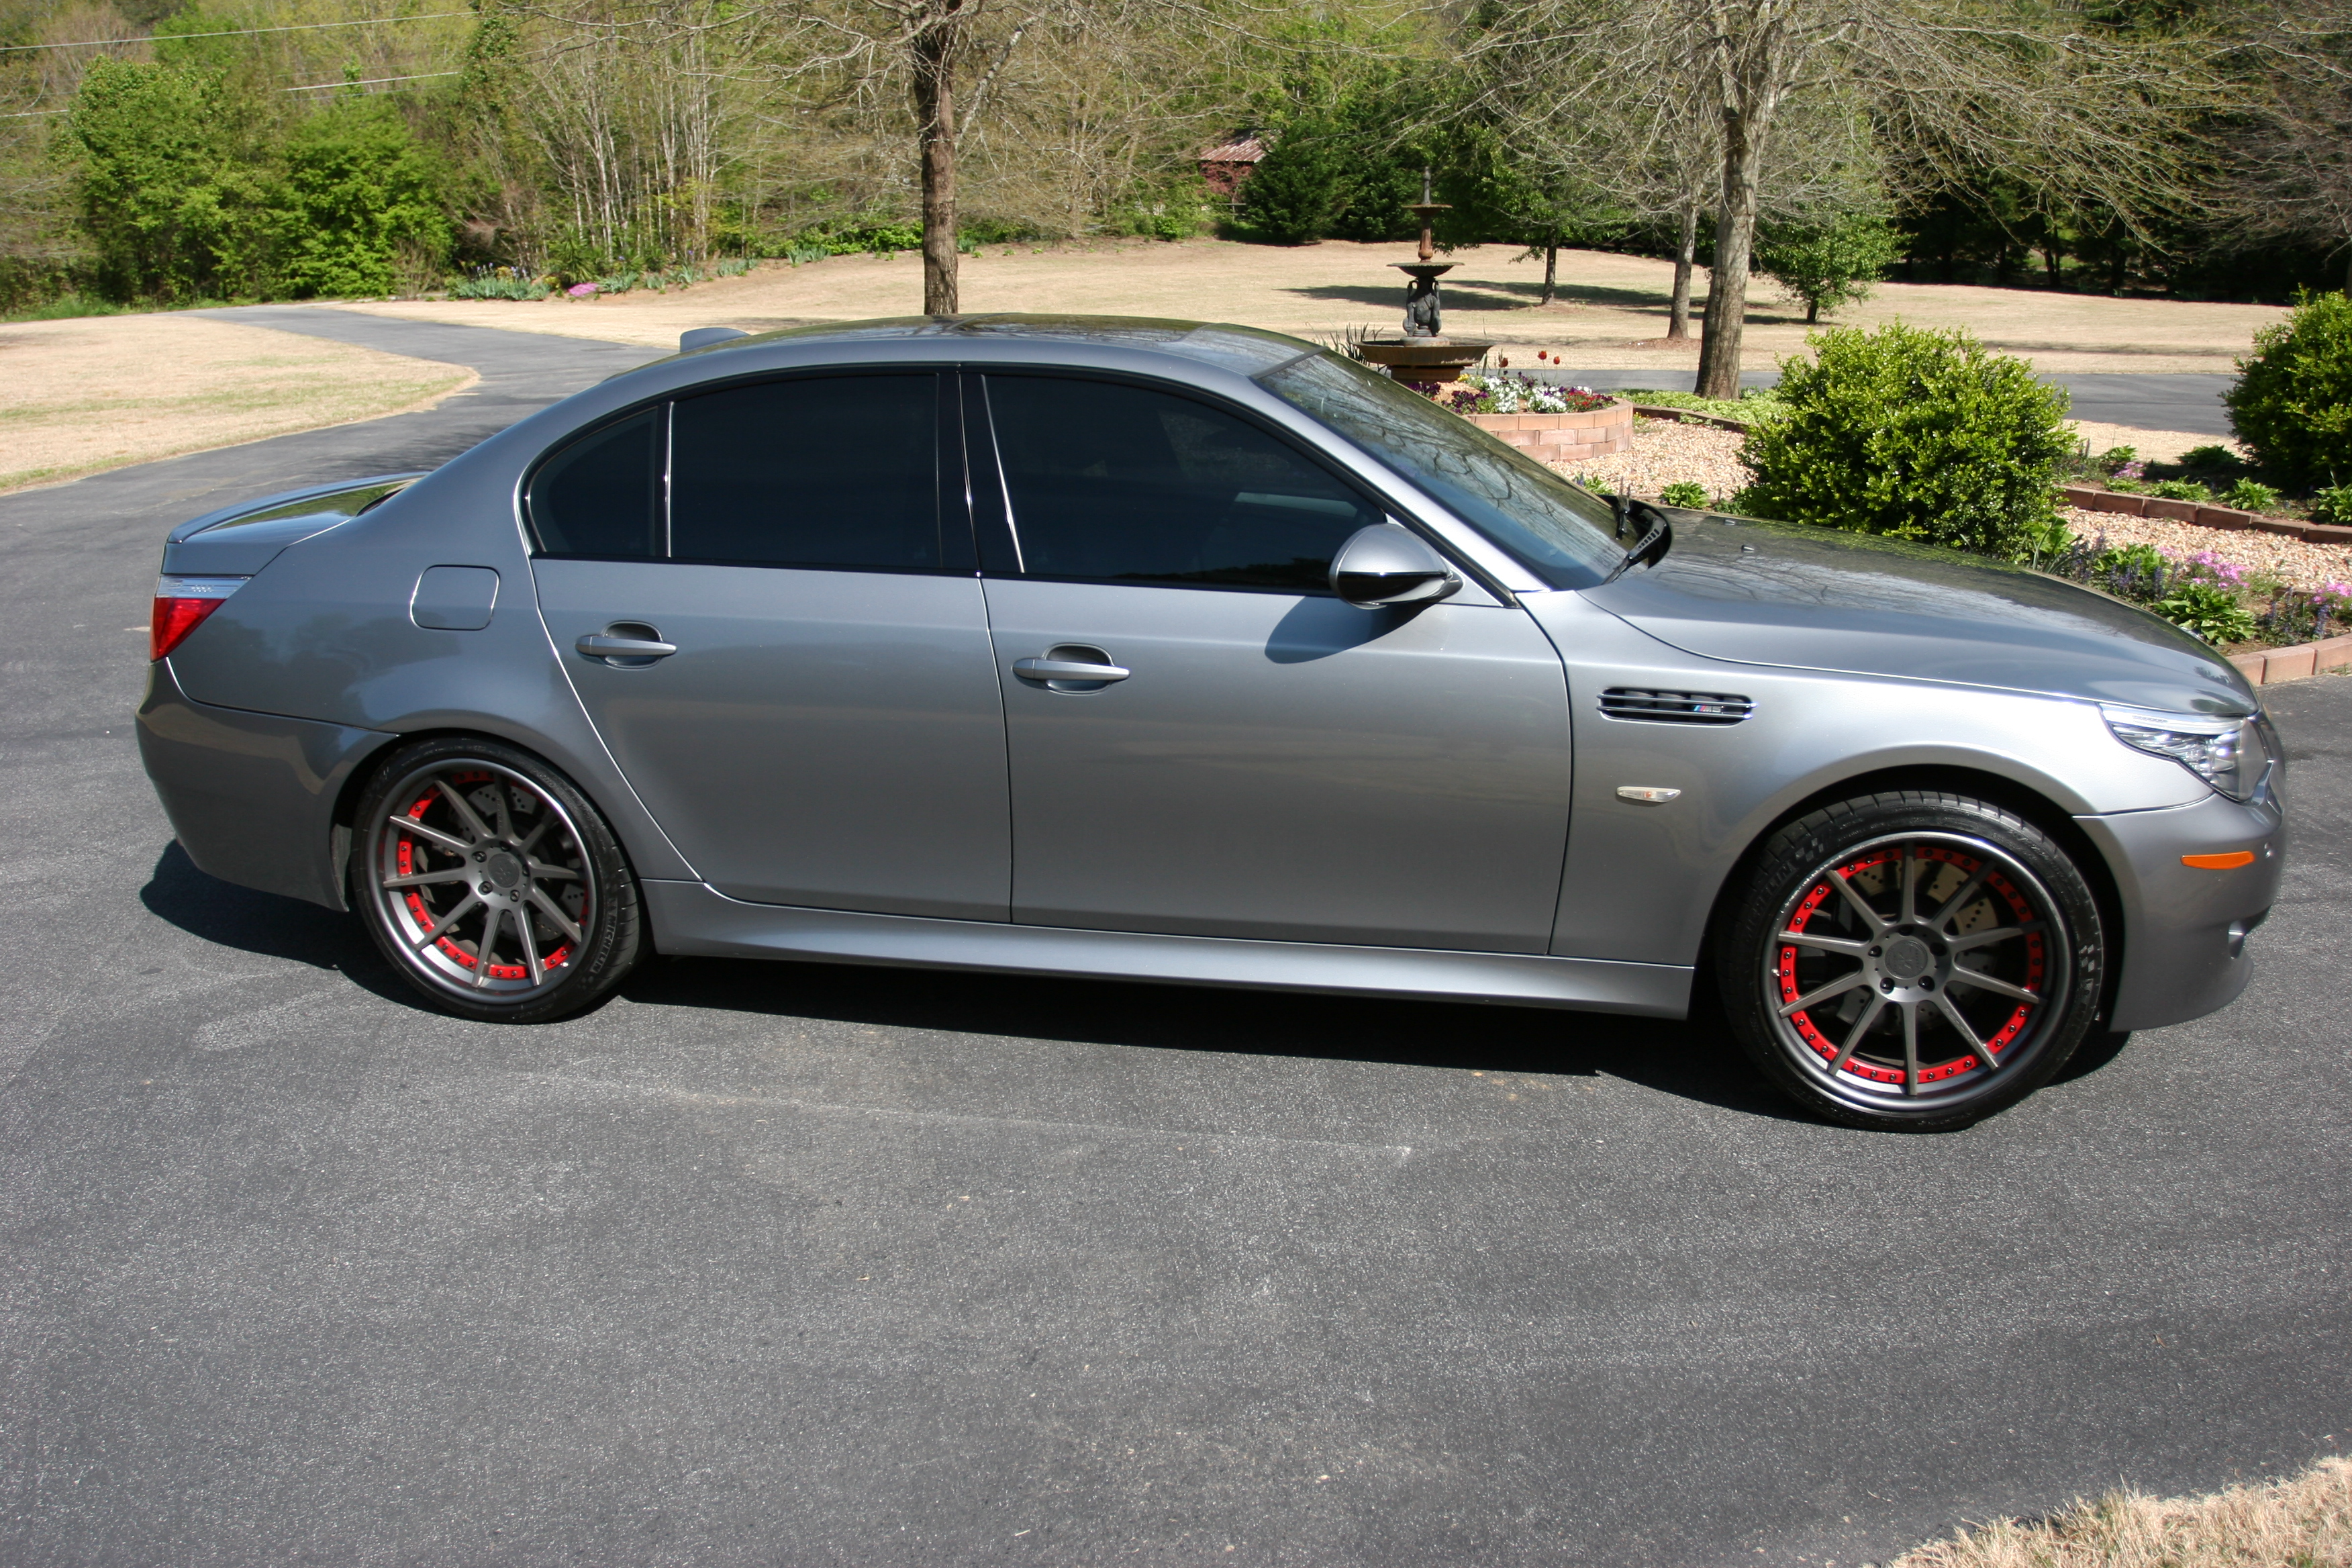 E60 0310 For Sale For Sale Feeler 2010 M5 6speed  BMW M5